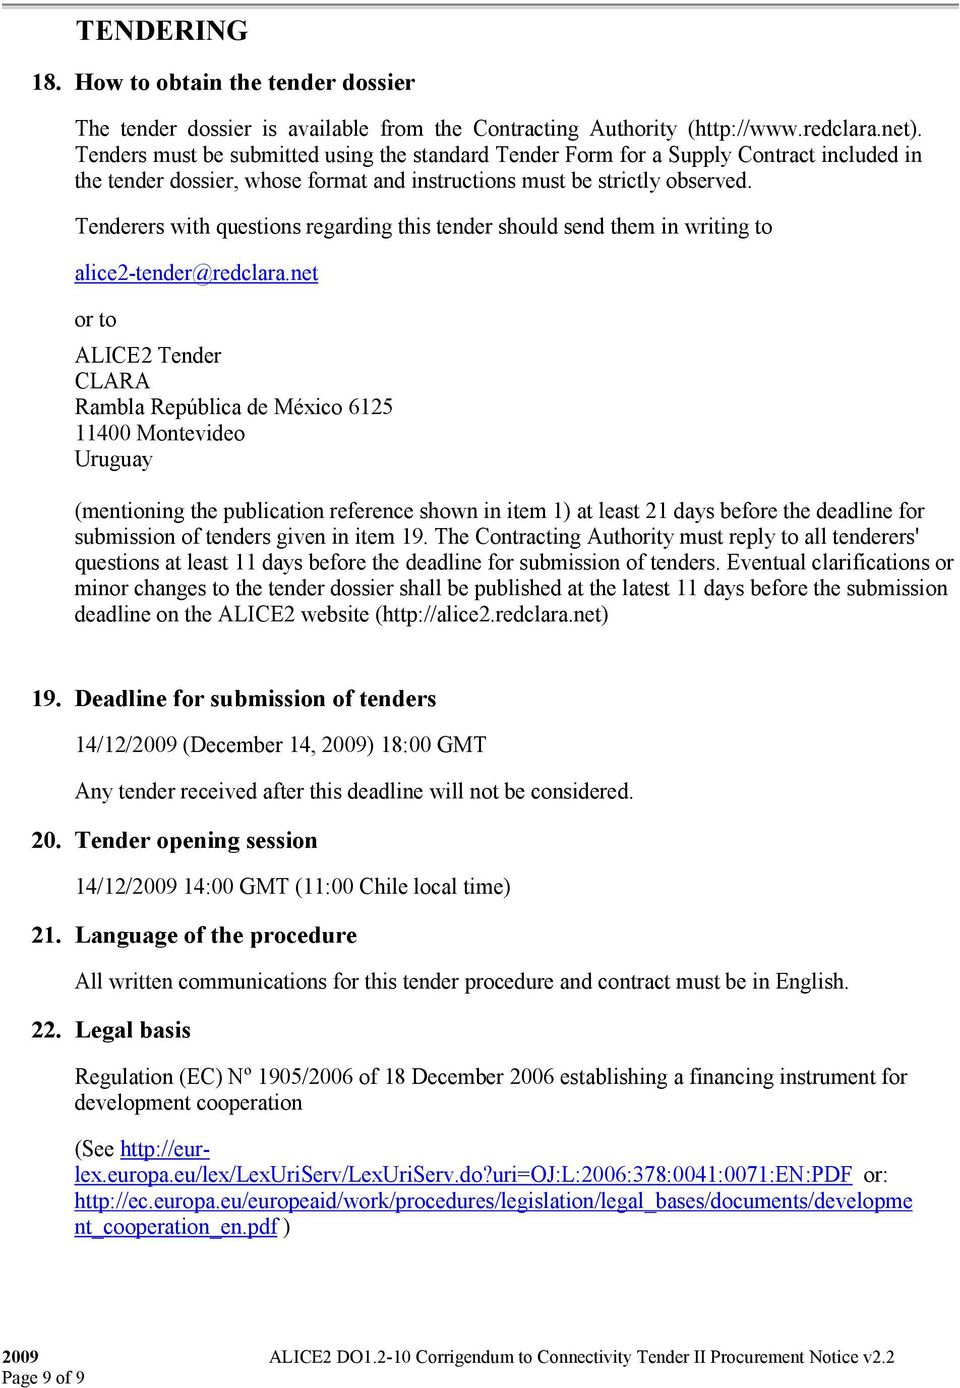 Tenderers with questions regarding this tender should send them in writing to alice2-tender@redclara.